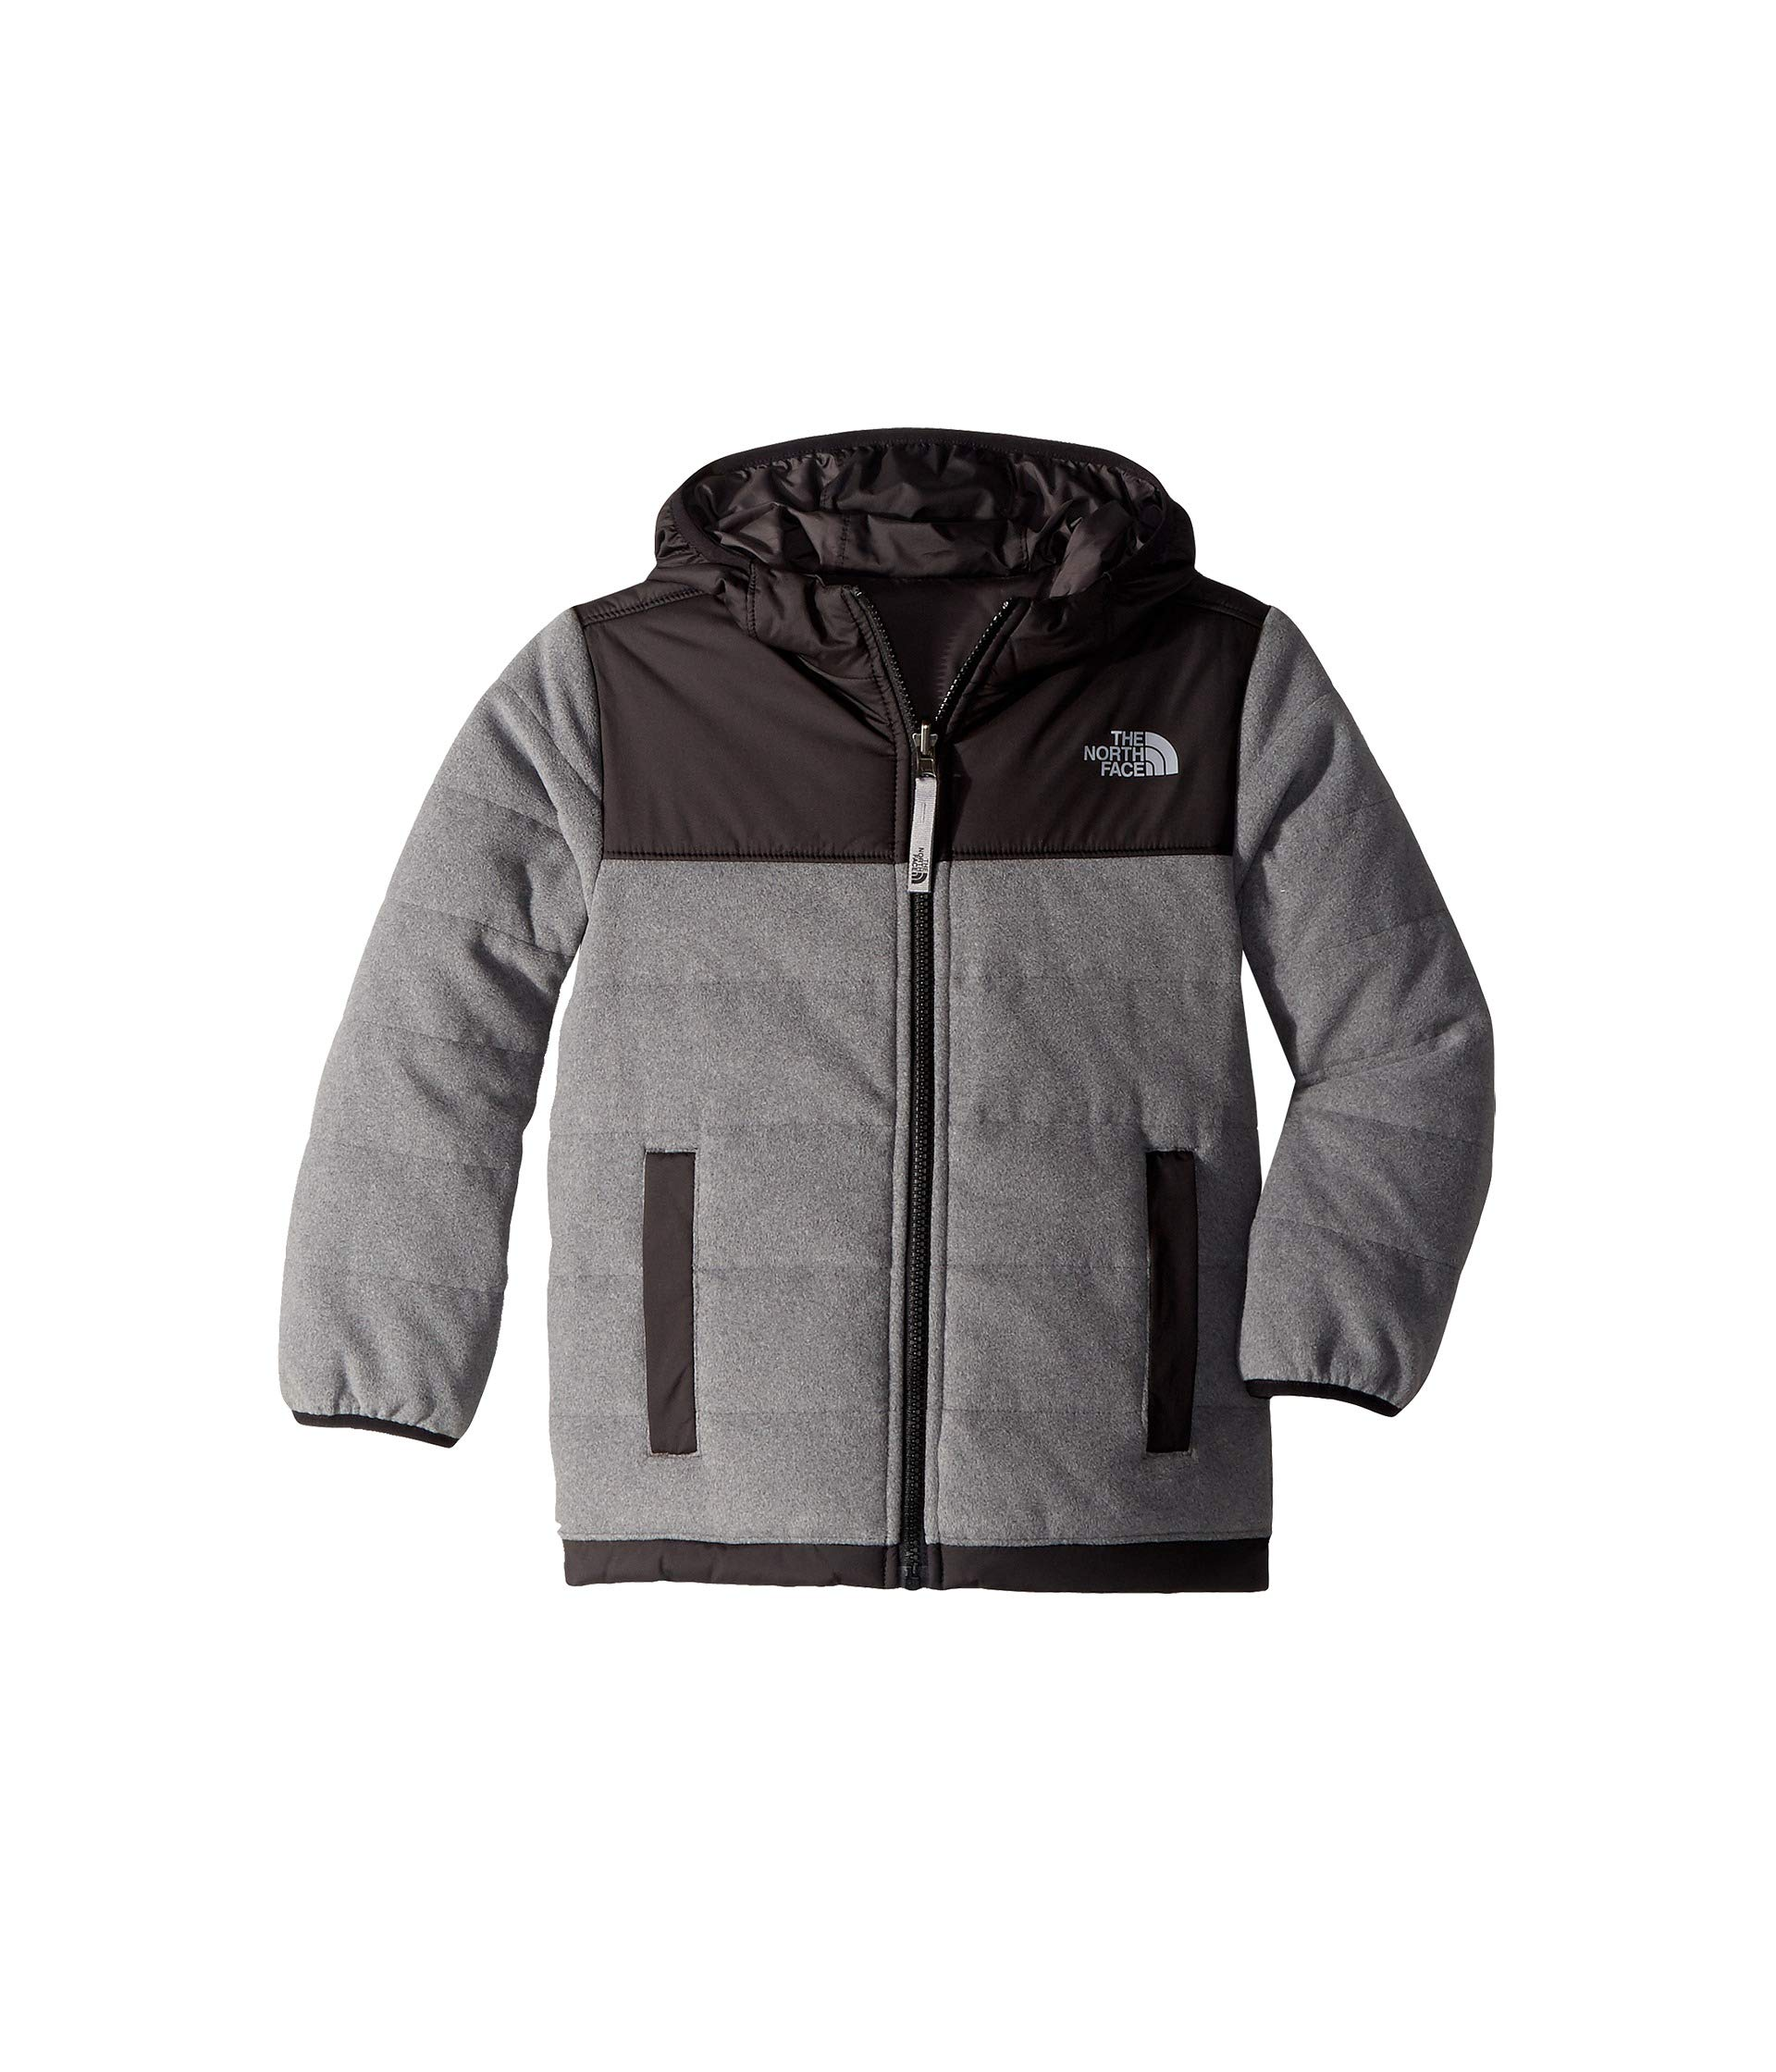 The North Face Boy's Reversible True False Jacket - TNF Medium Grey Heather & Graphite Grey - XL